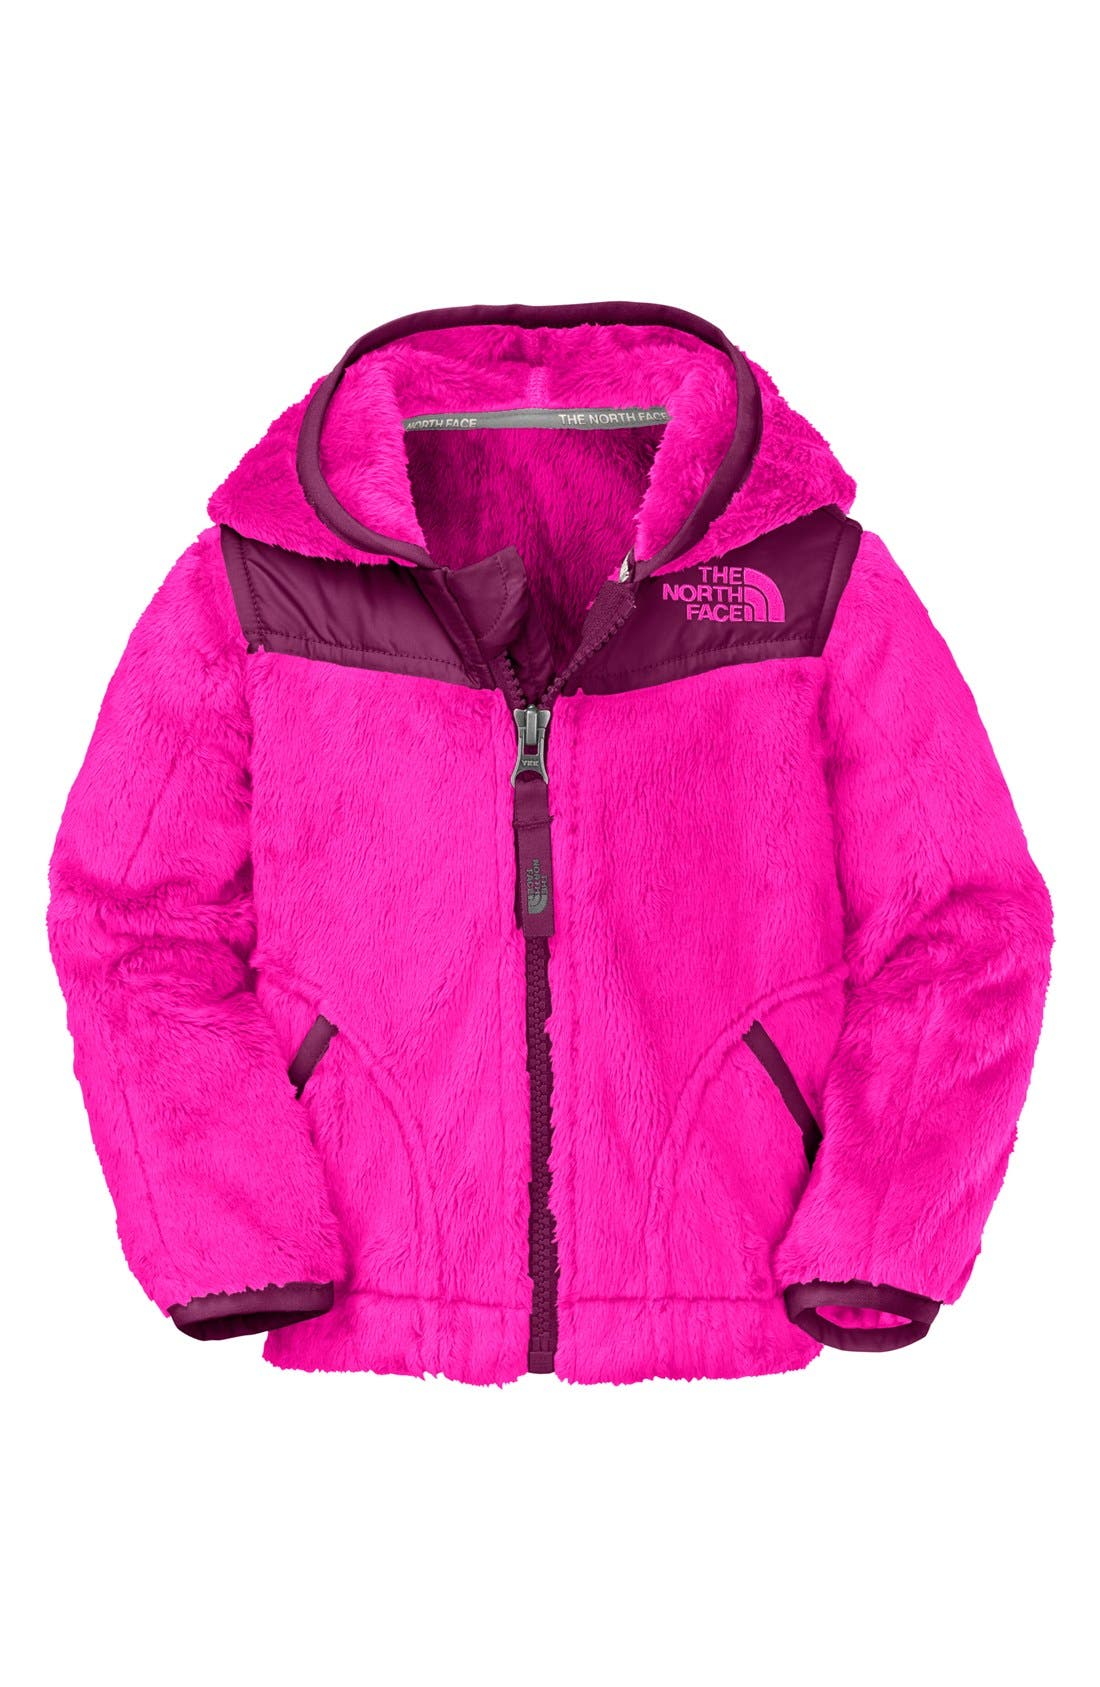 Alternate Image 1 Selected - The North Face 'Oso' Fleece Hoodie (Baby Girls)